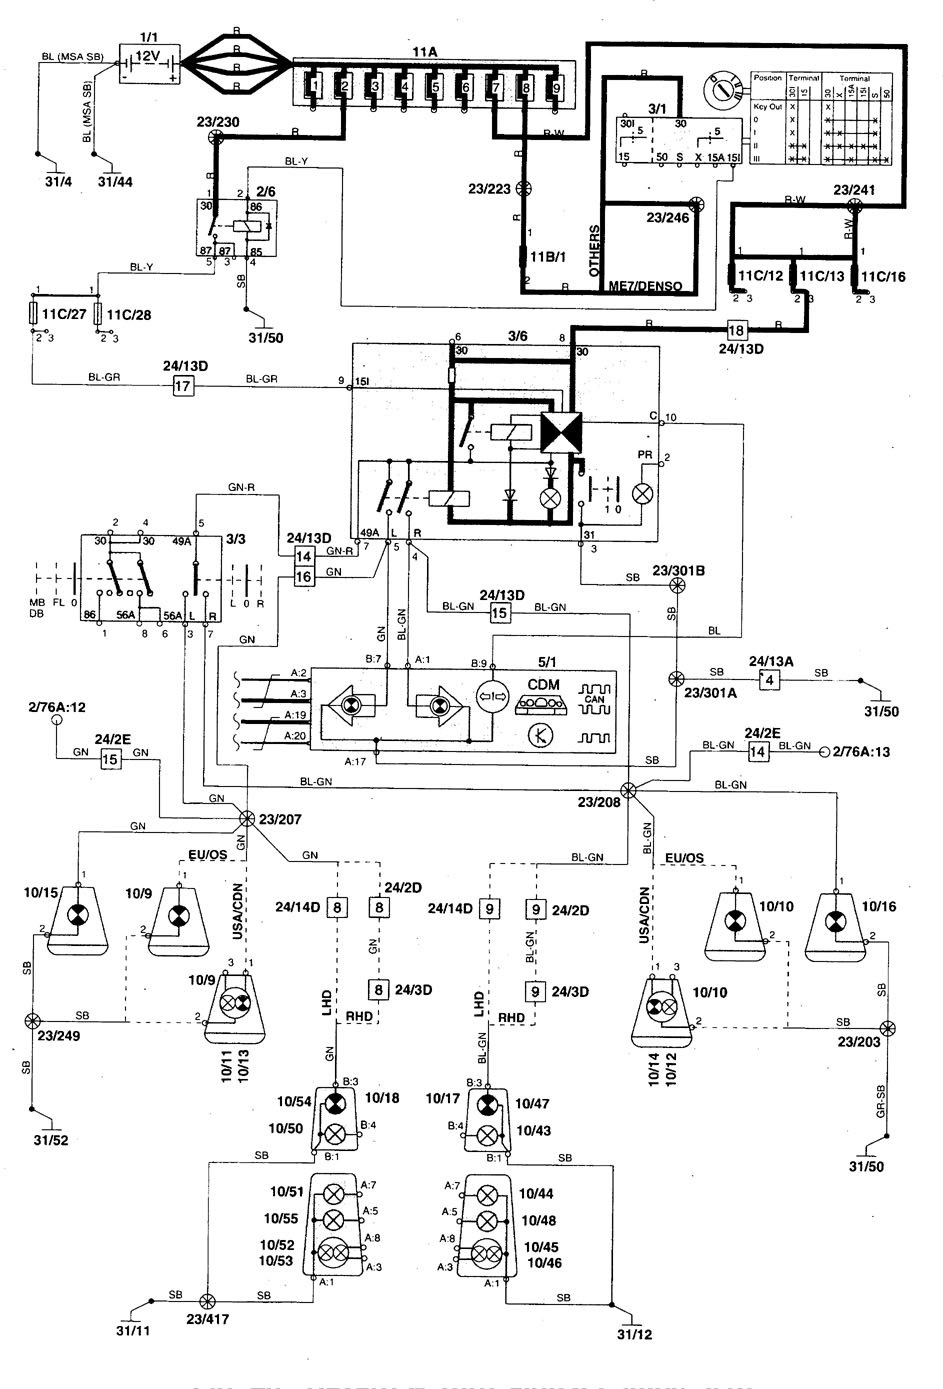 wiring diagram volvo v70 1998 simple guide about wiring diagram u2022 rh  bluecrm co 1998 Volvo